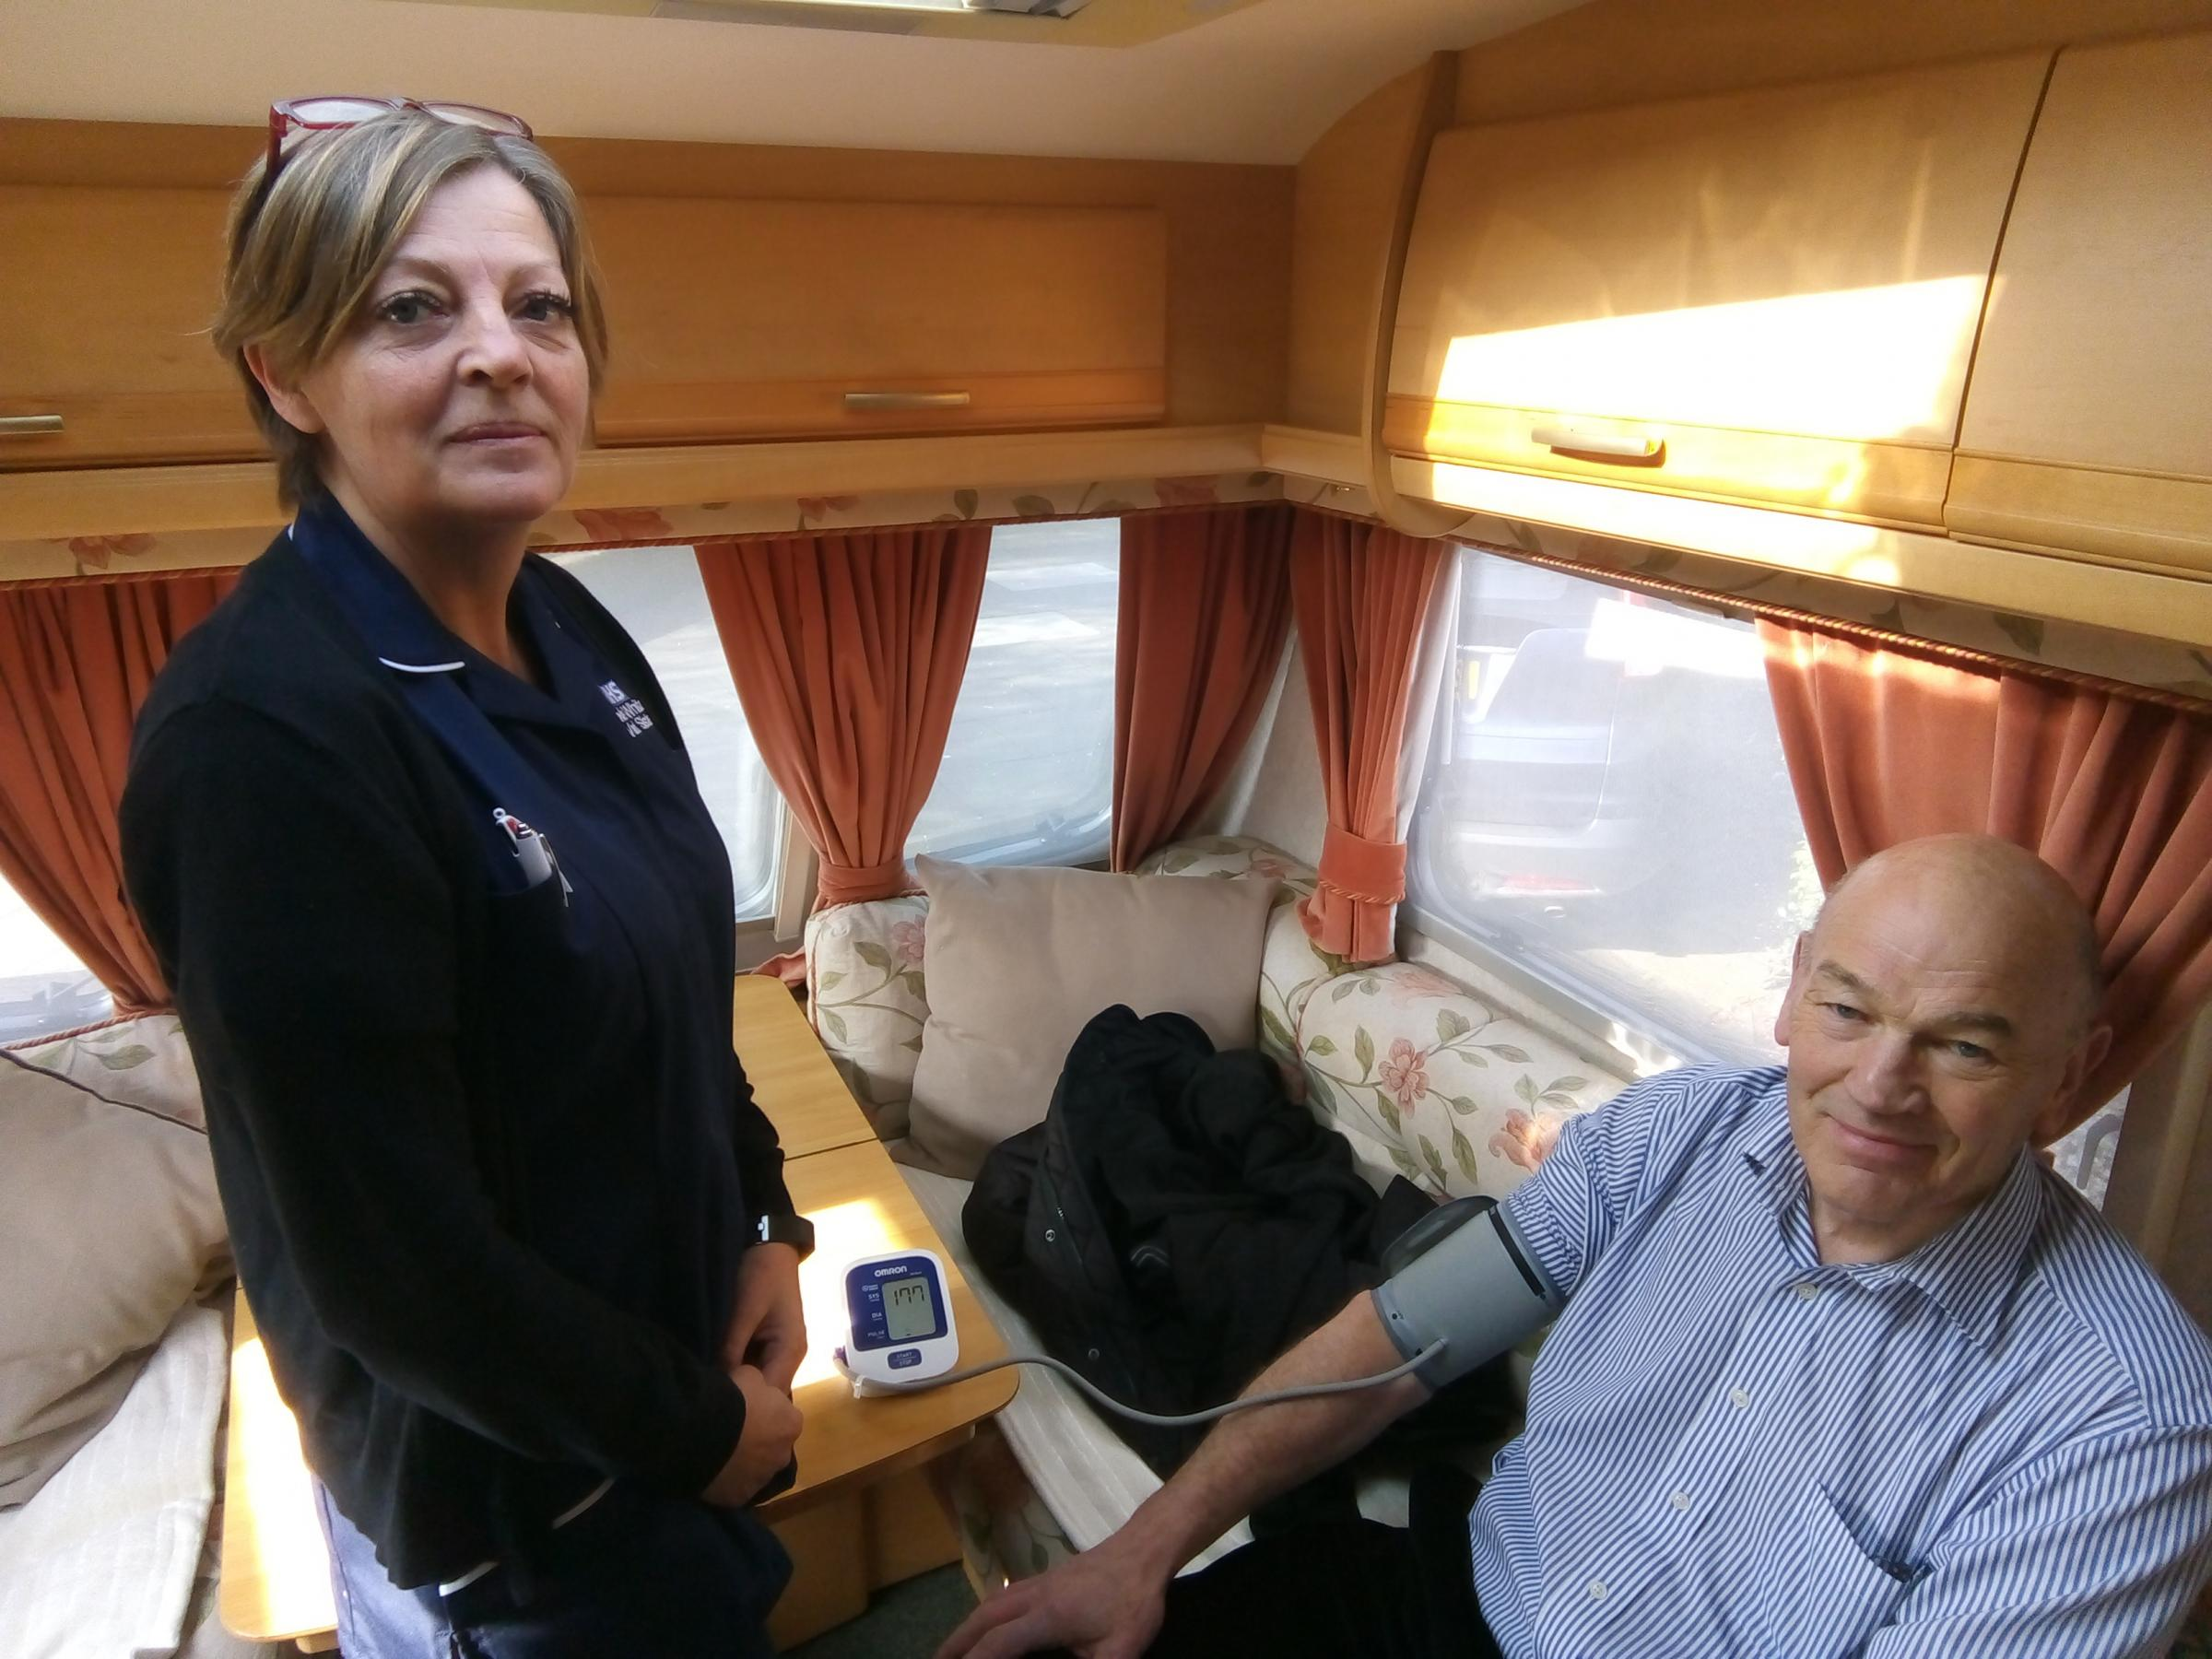 Michelle Whitaker, of Whitchurch Community Hospital, gives a blood pressure test to Mike Allman, 73, of Coton